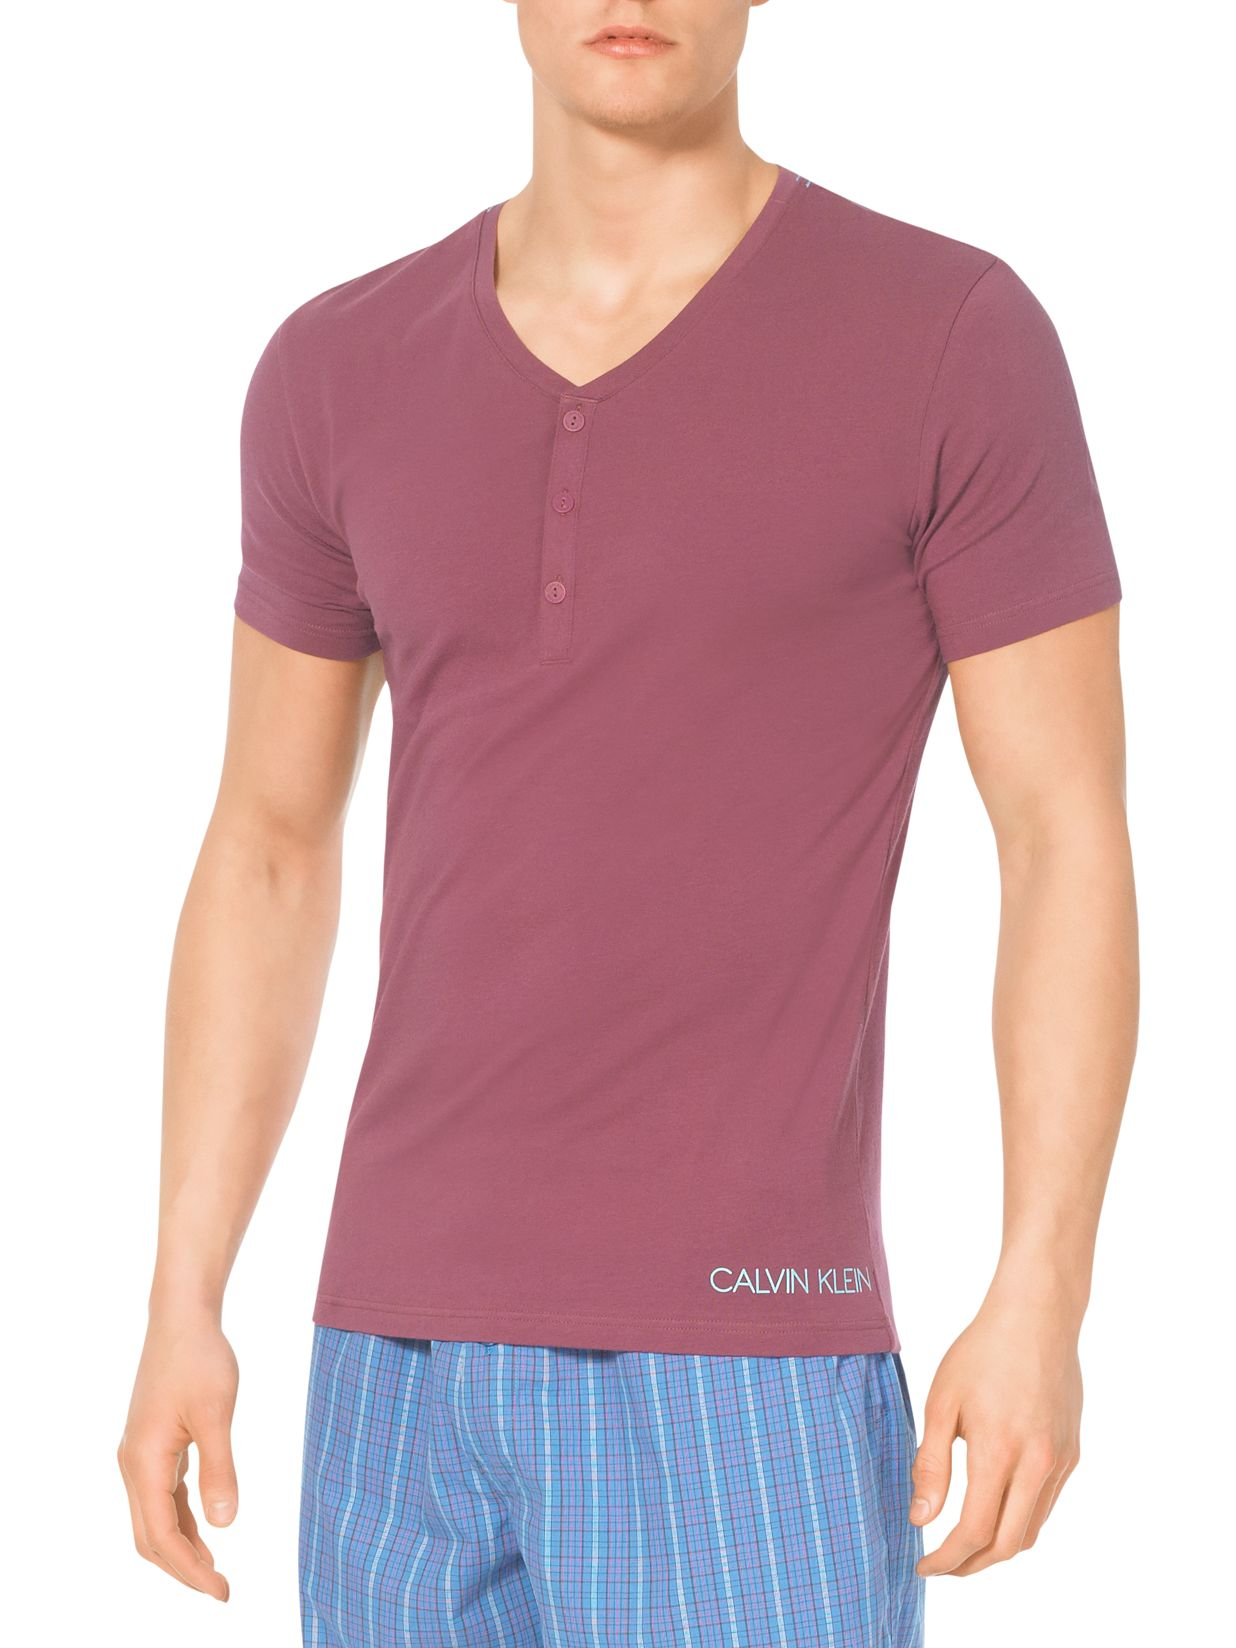 Calvin Klein Henly V-Neck Lounge T-Shirt, Mauve